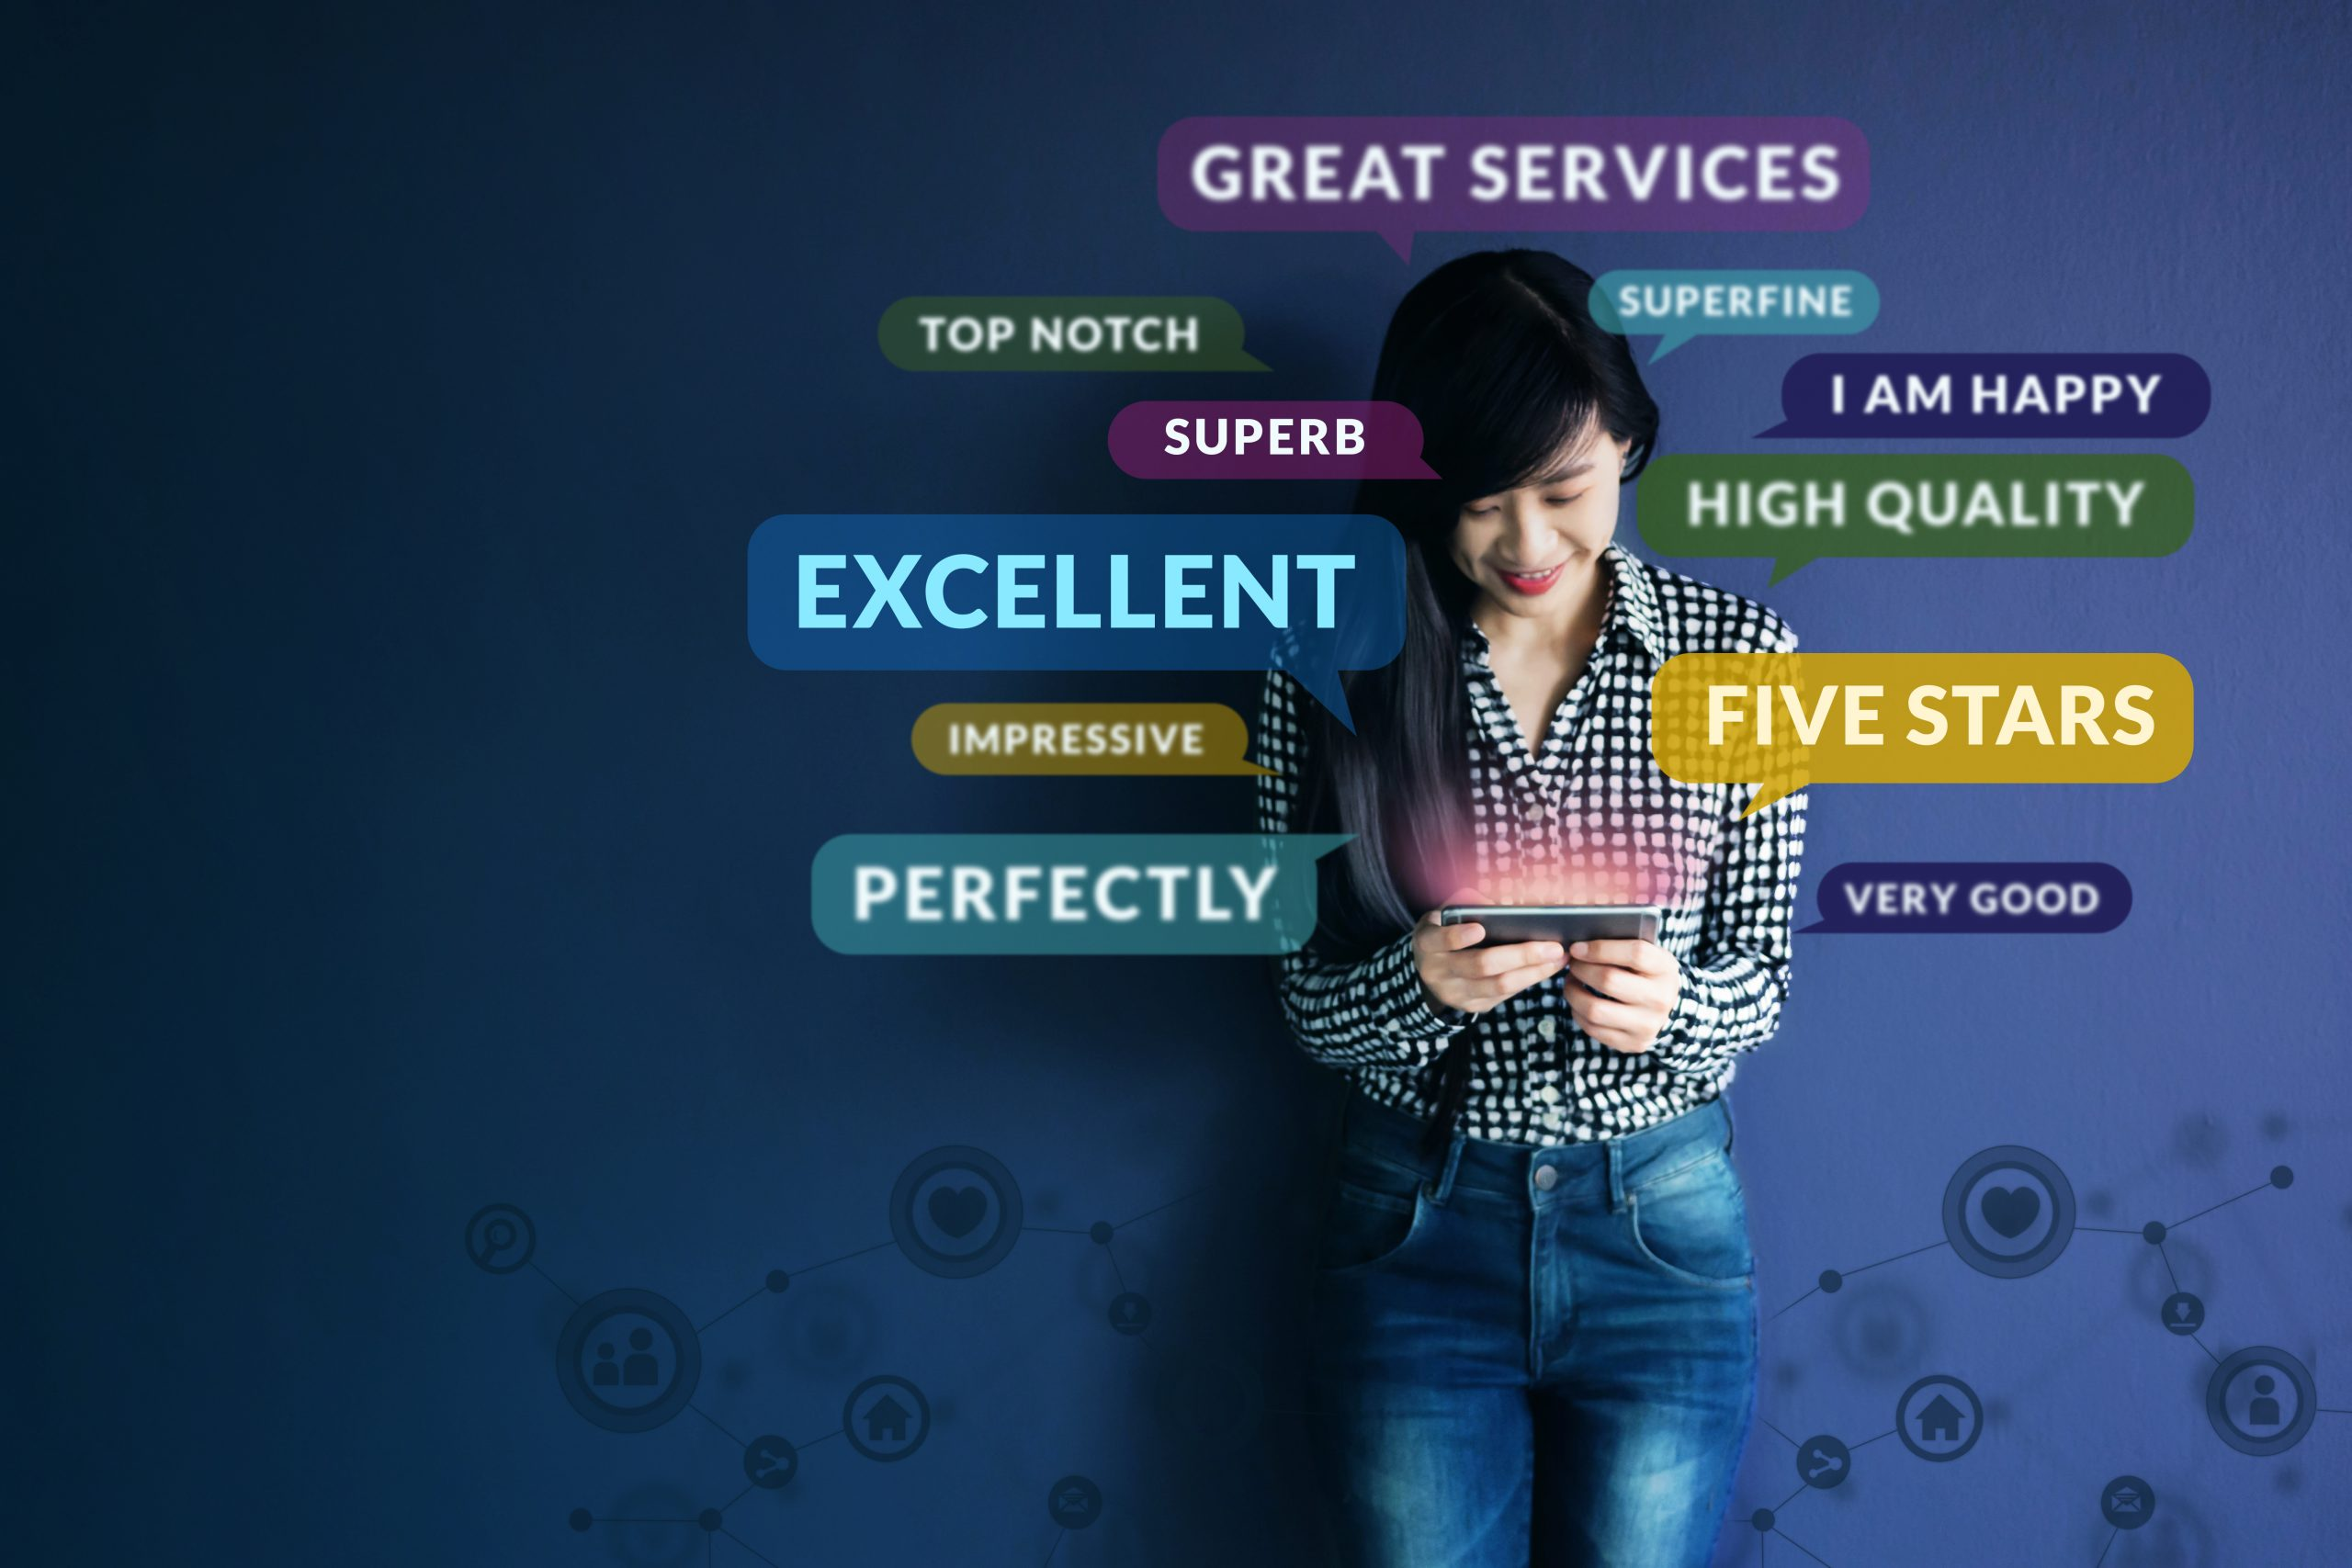 Why companies should consider improving their CX / Customer Experience strategy